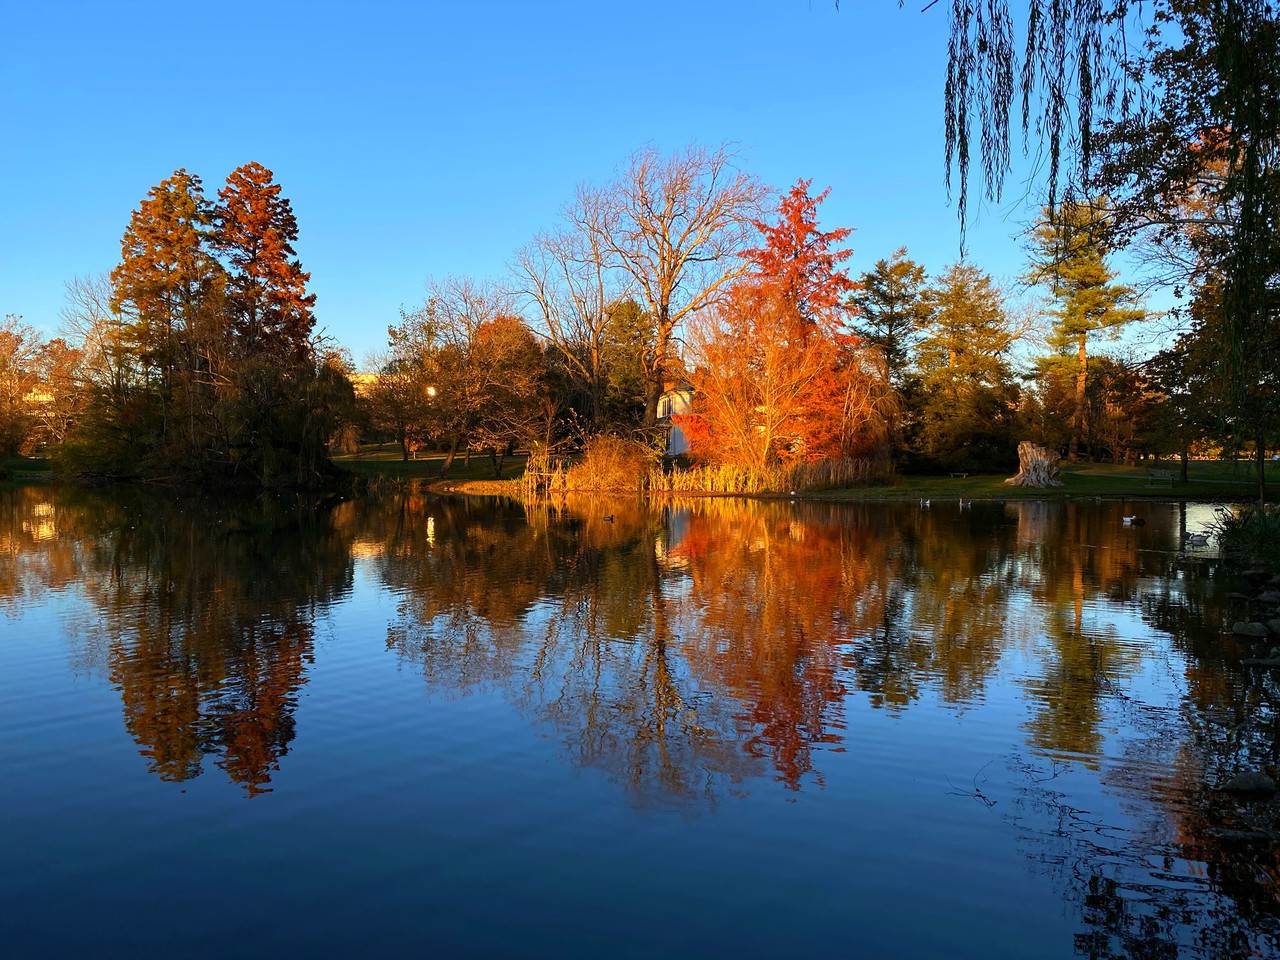 trees reflected in the Duck Pond